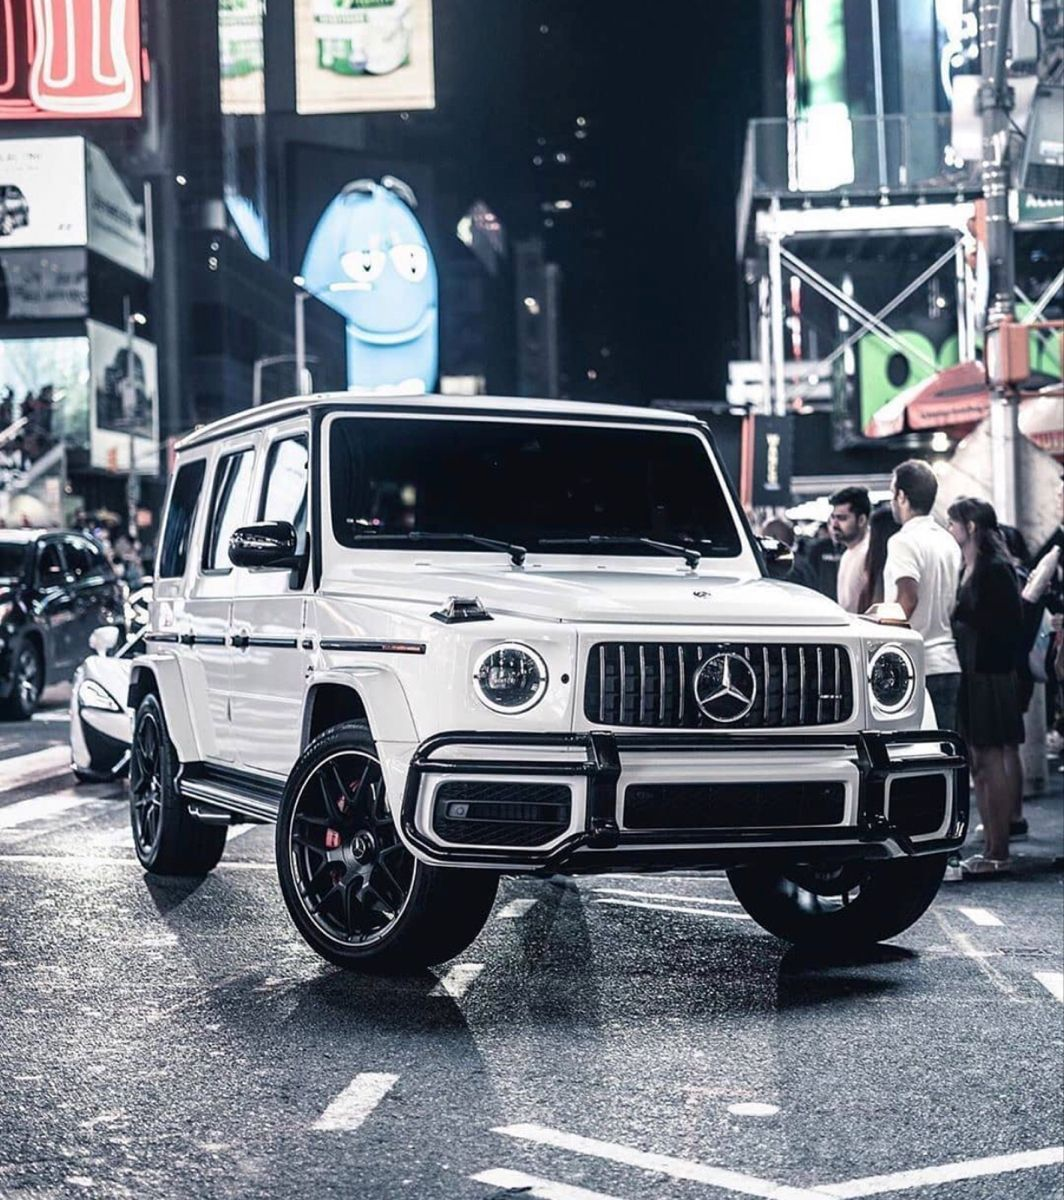 Pin By Pachozorro Zorror On Carros In 2020 Super Luxury Cars Mercedes Benz G Class Mercedes Truck